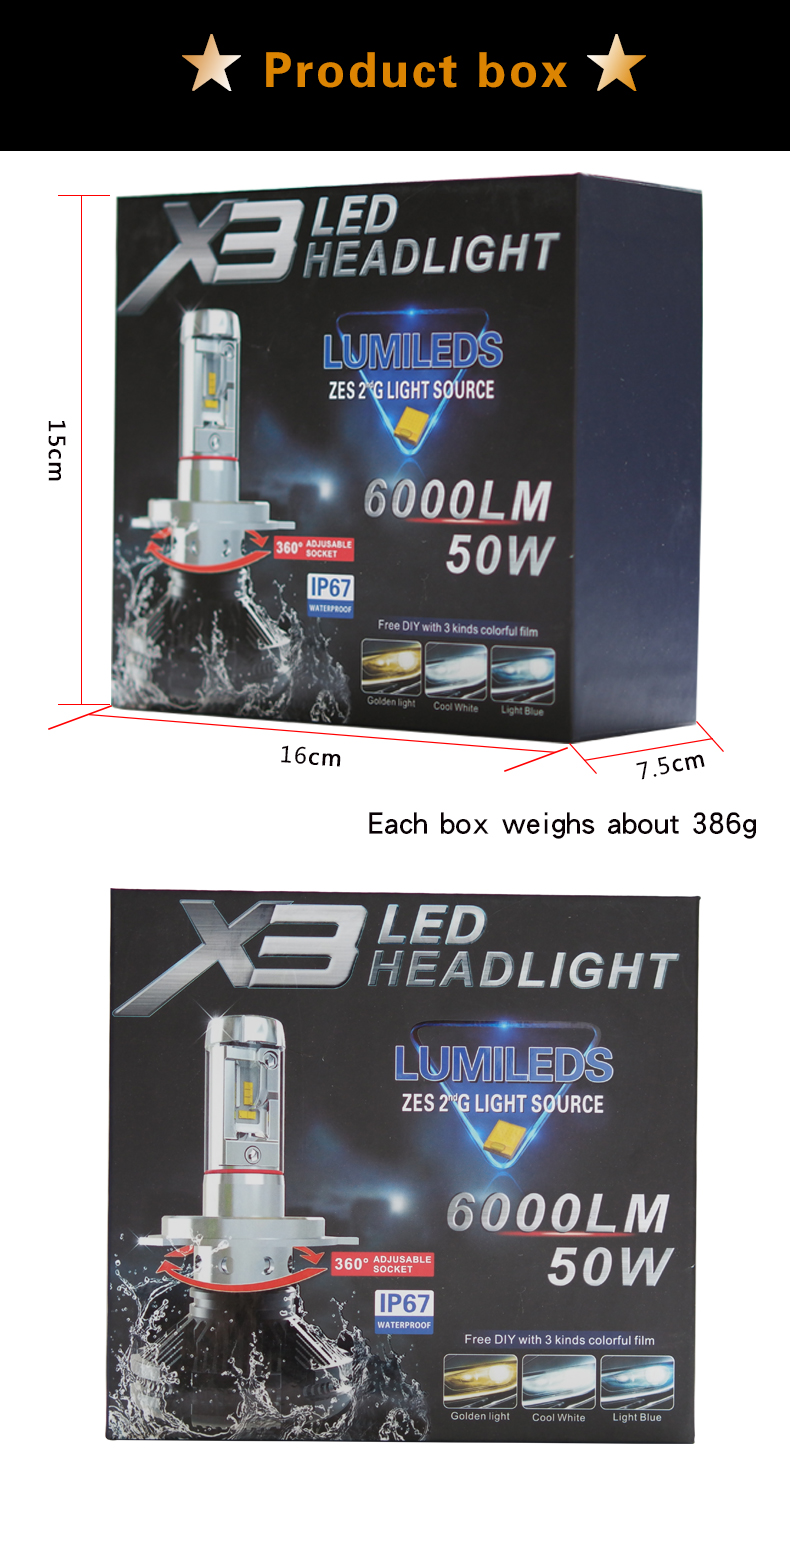 SET LEUCHTEN H7 LED X3 LED HEADLIGHT 6000LM 50W LUMILEDS ZES 2G ALUMINIUM IP67